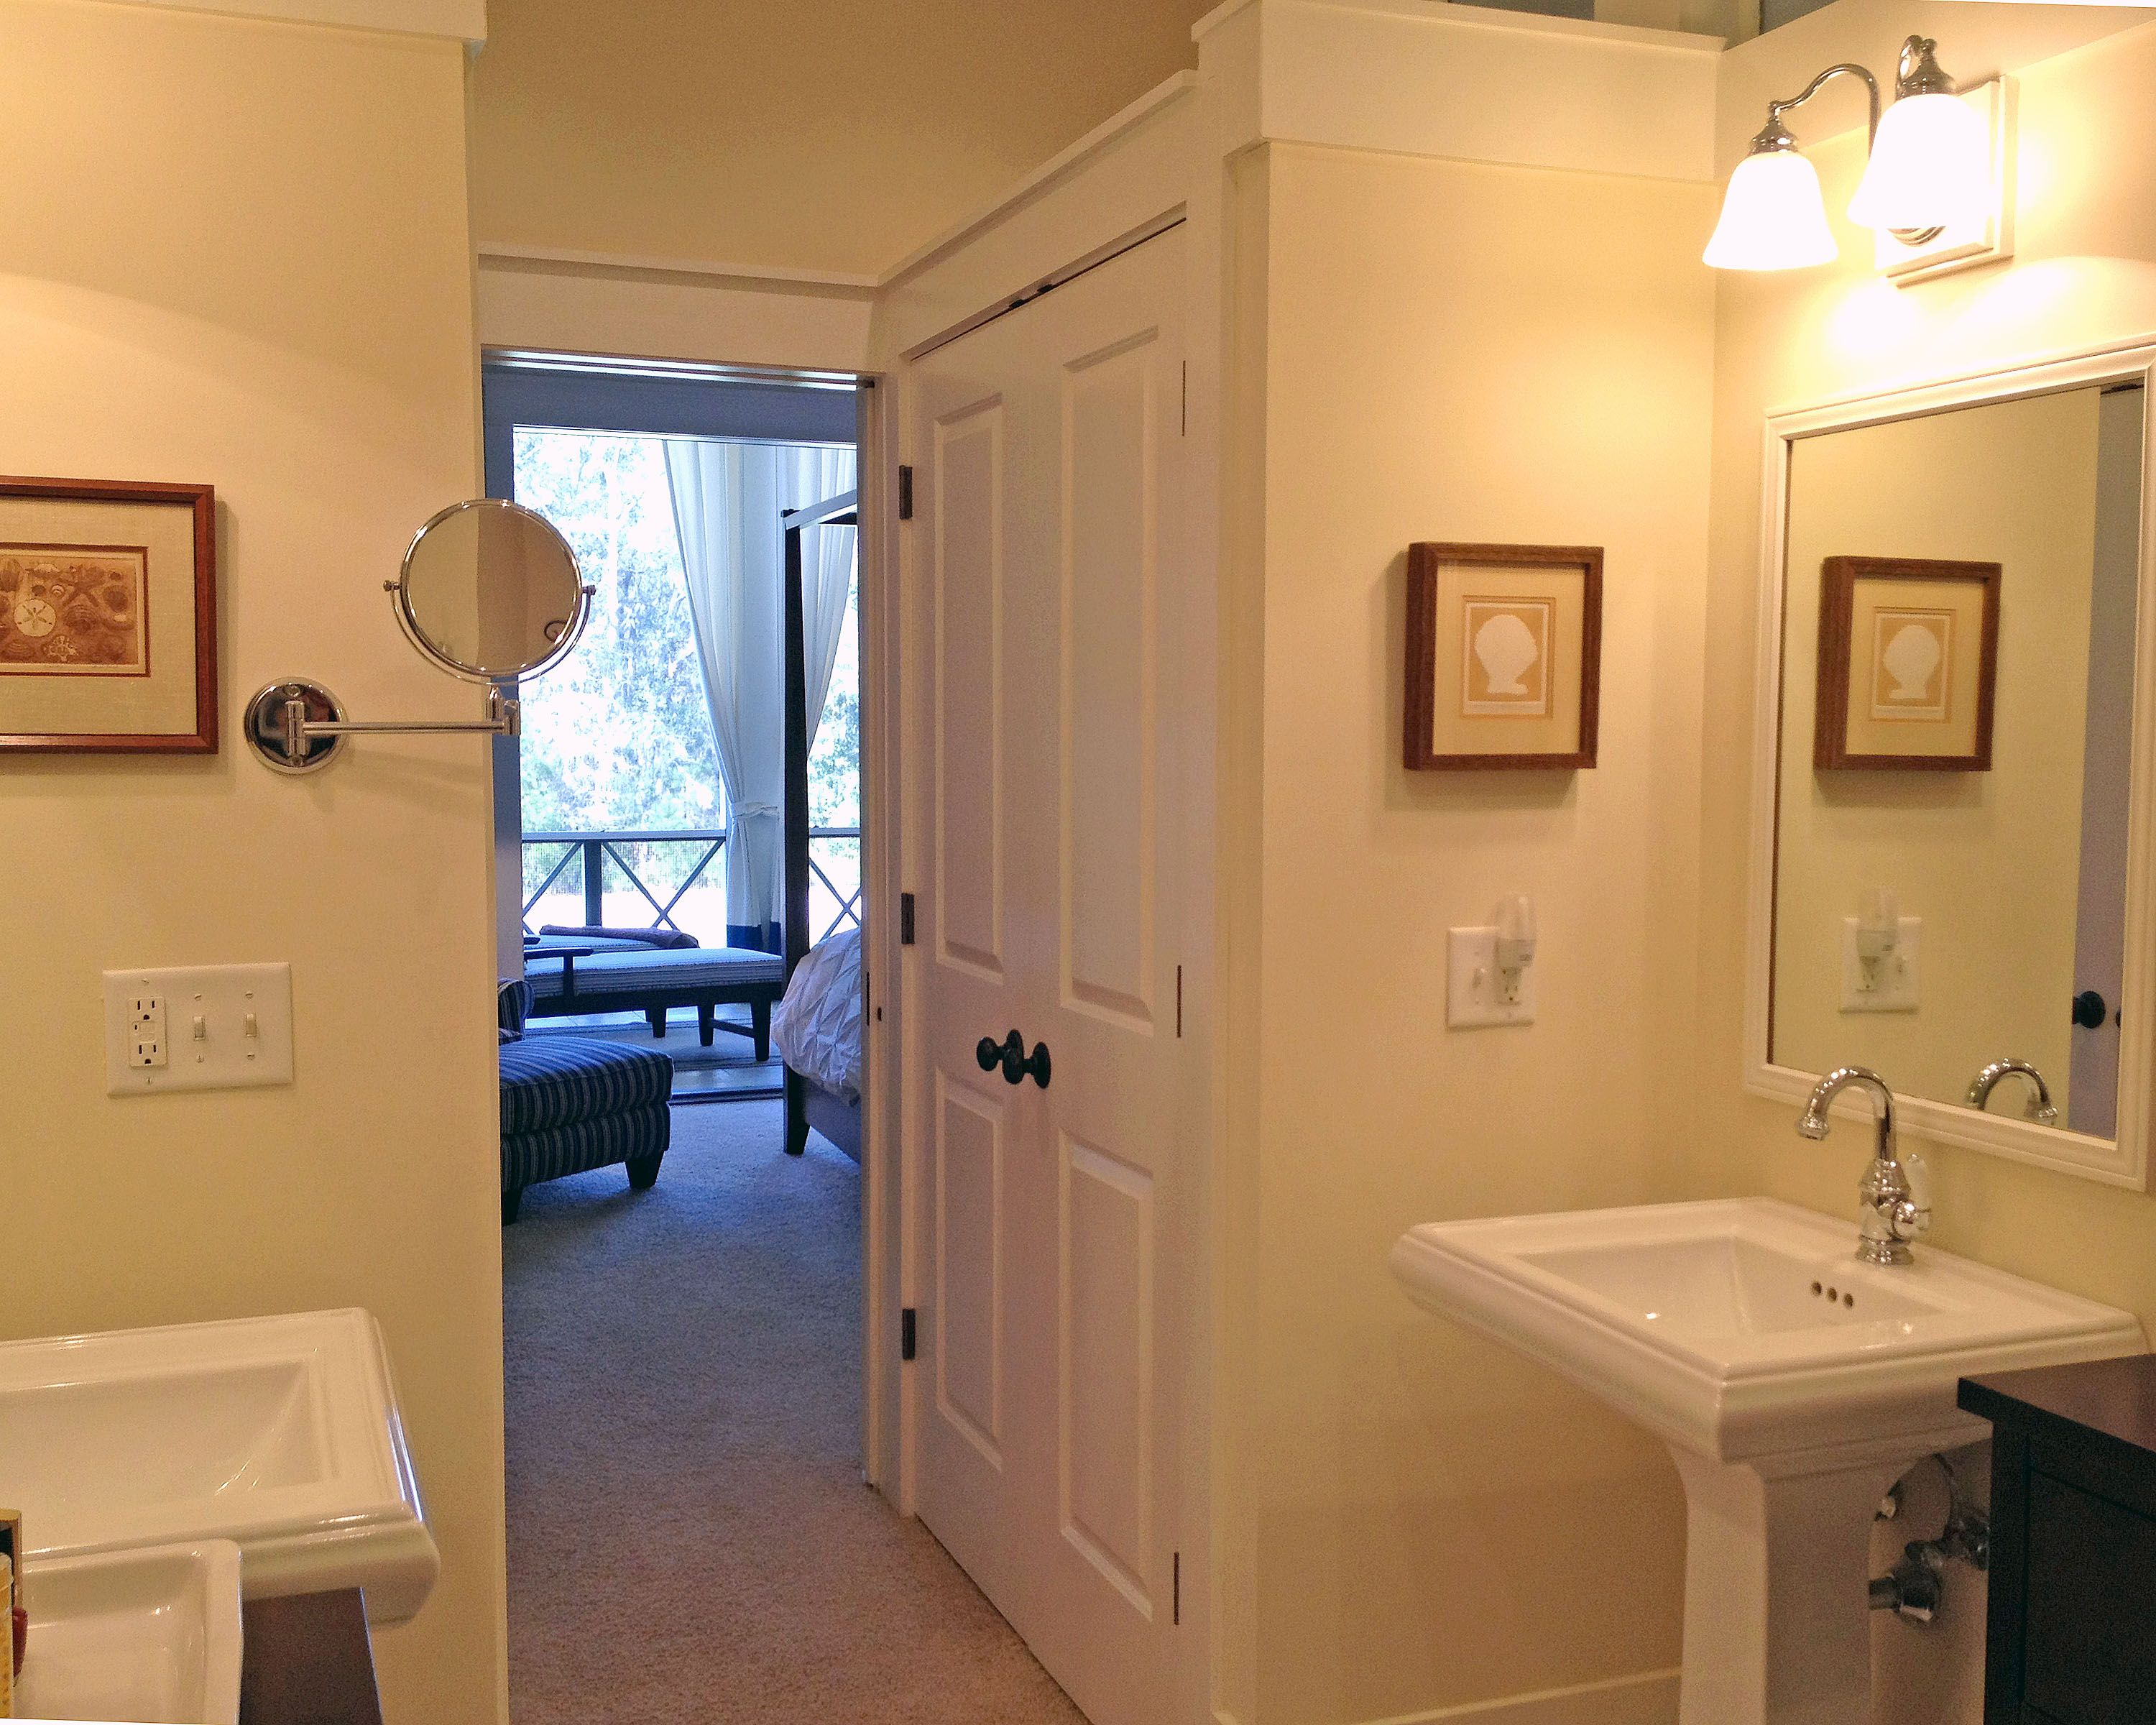 Master Bathrooms Are Accessed By Walk Through Closets That Can Be Enclosed  By Decorative Curtain Or Custom Doors.